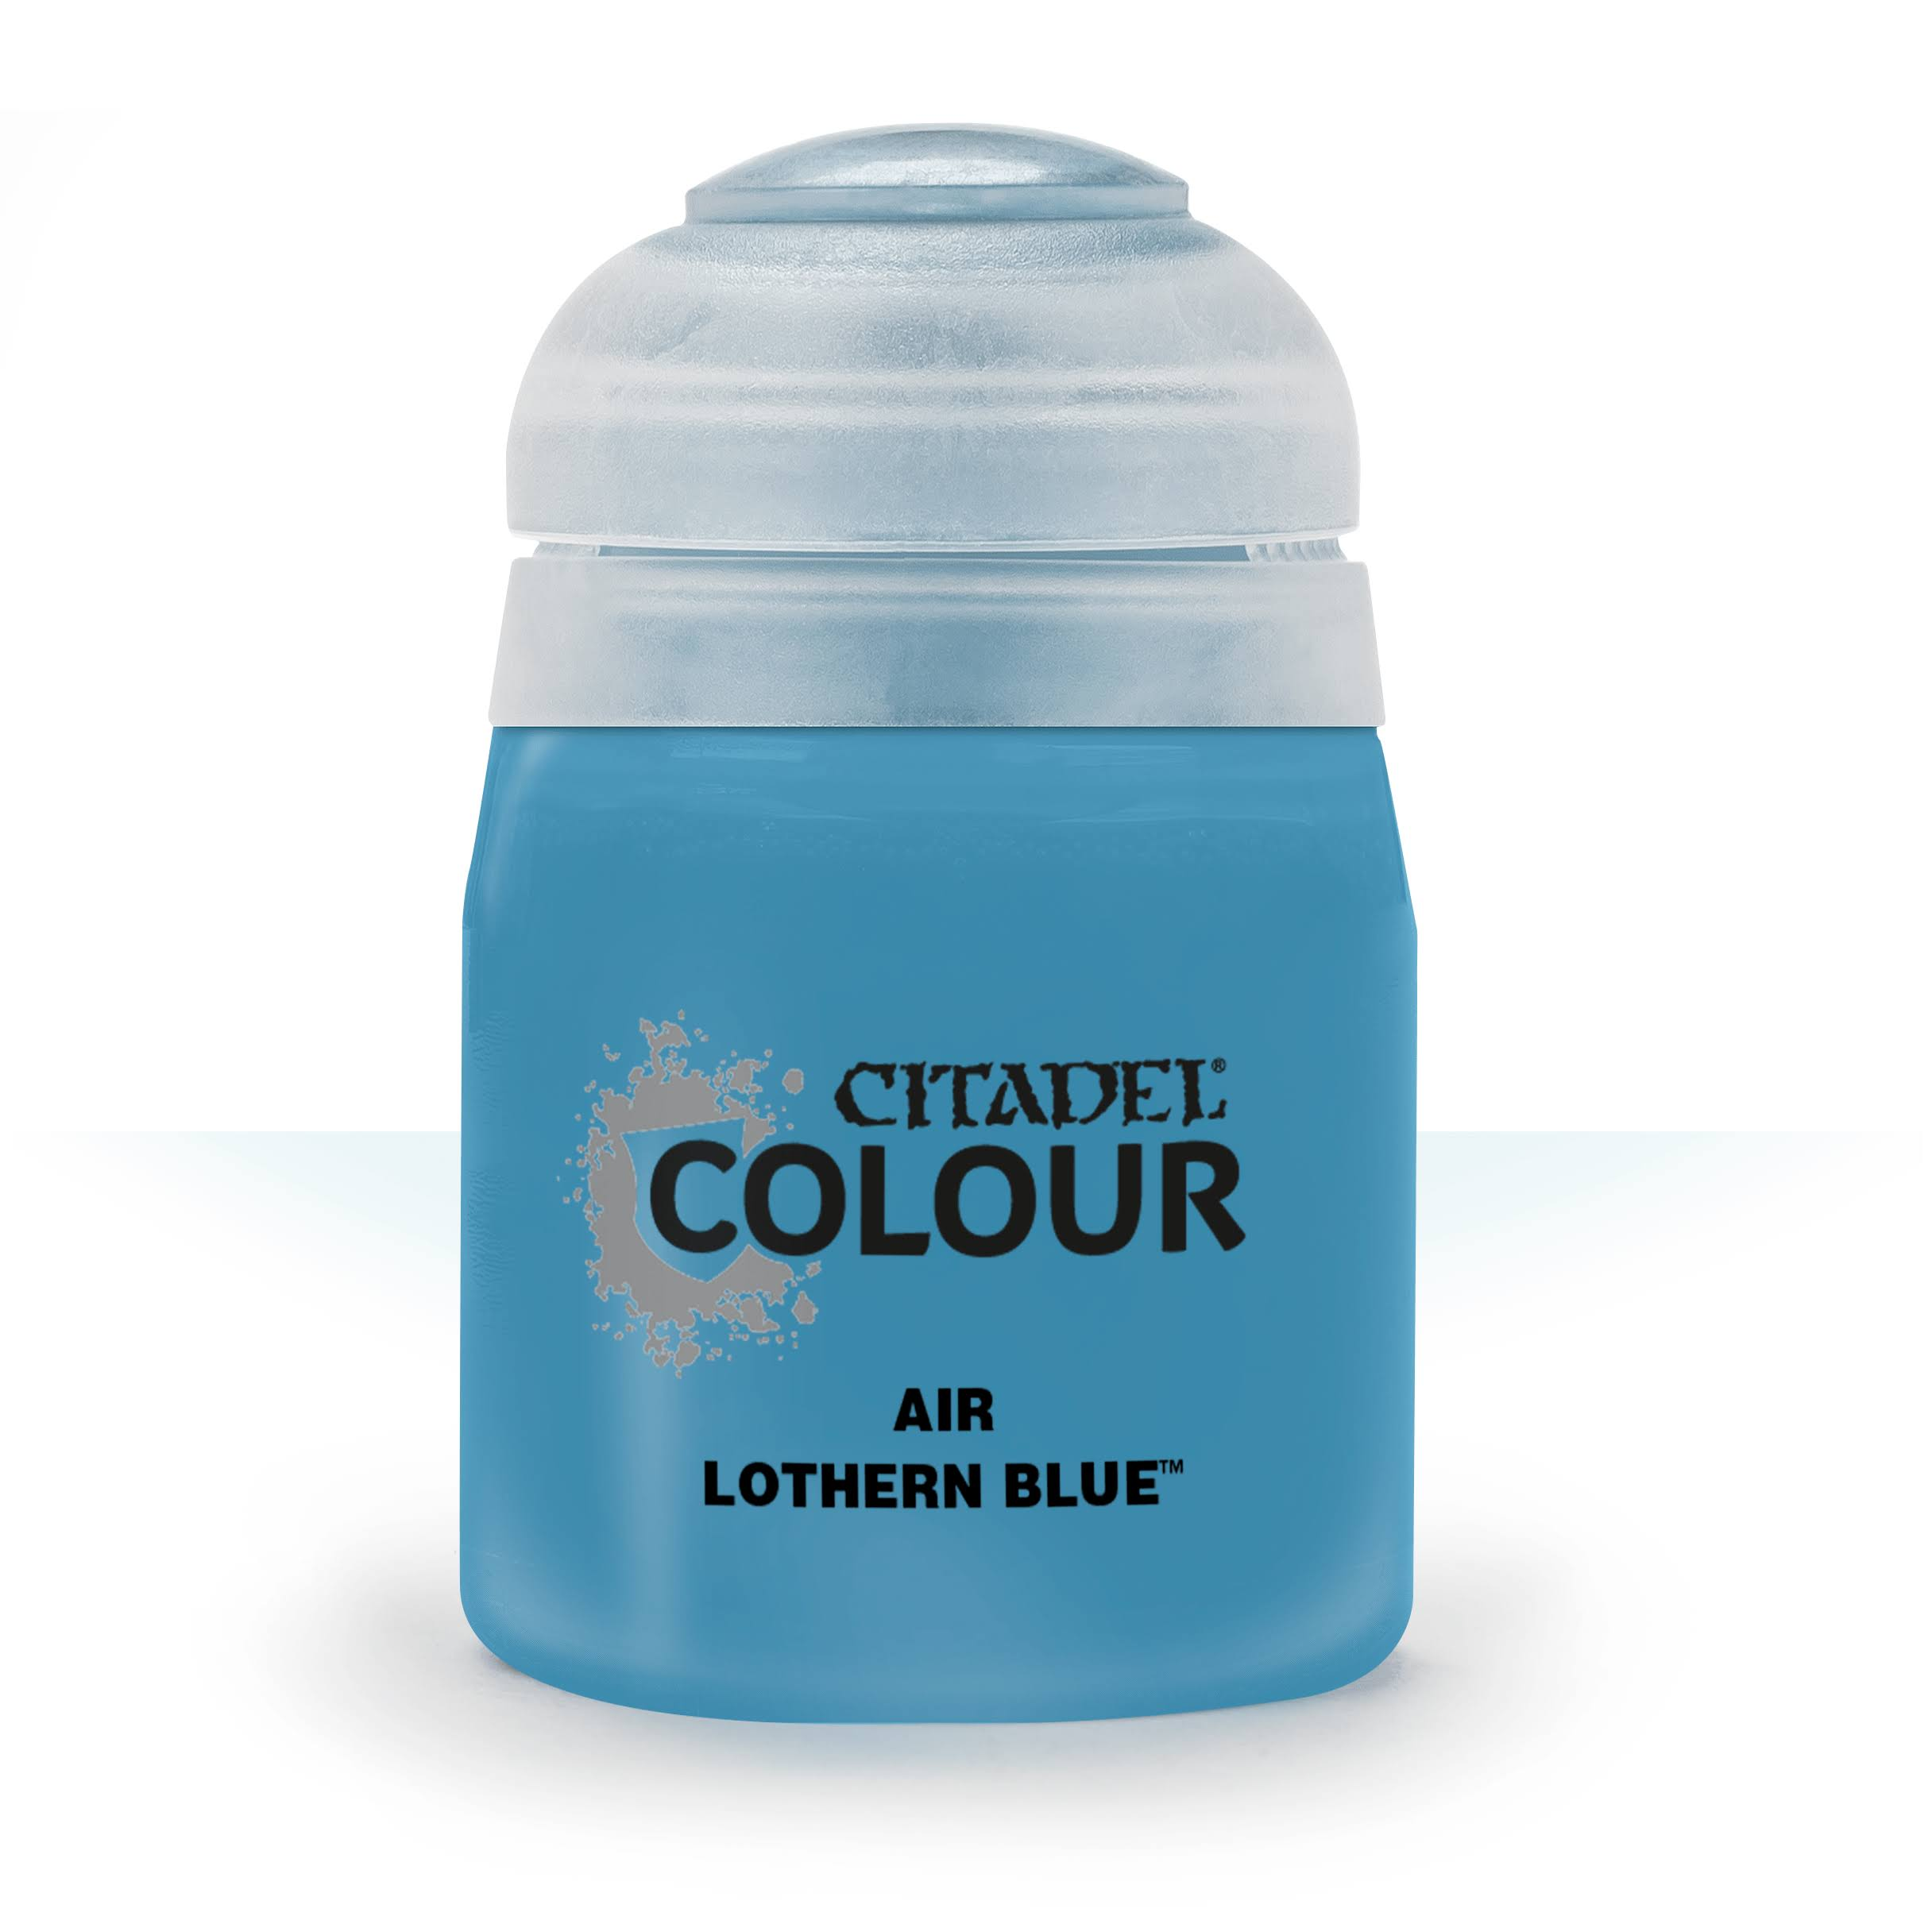 Citadel Air: Lothern Blue